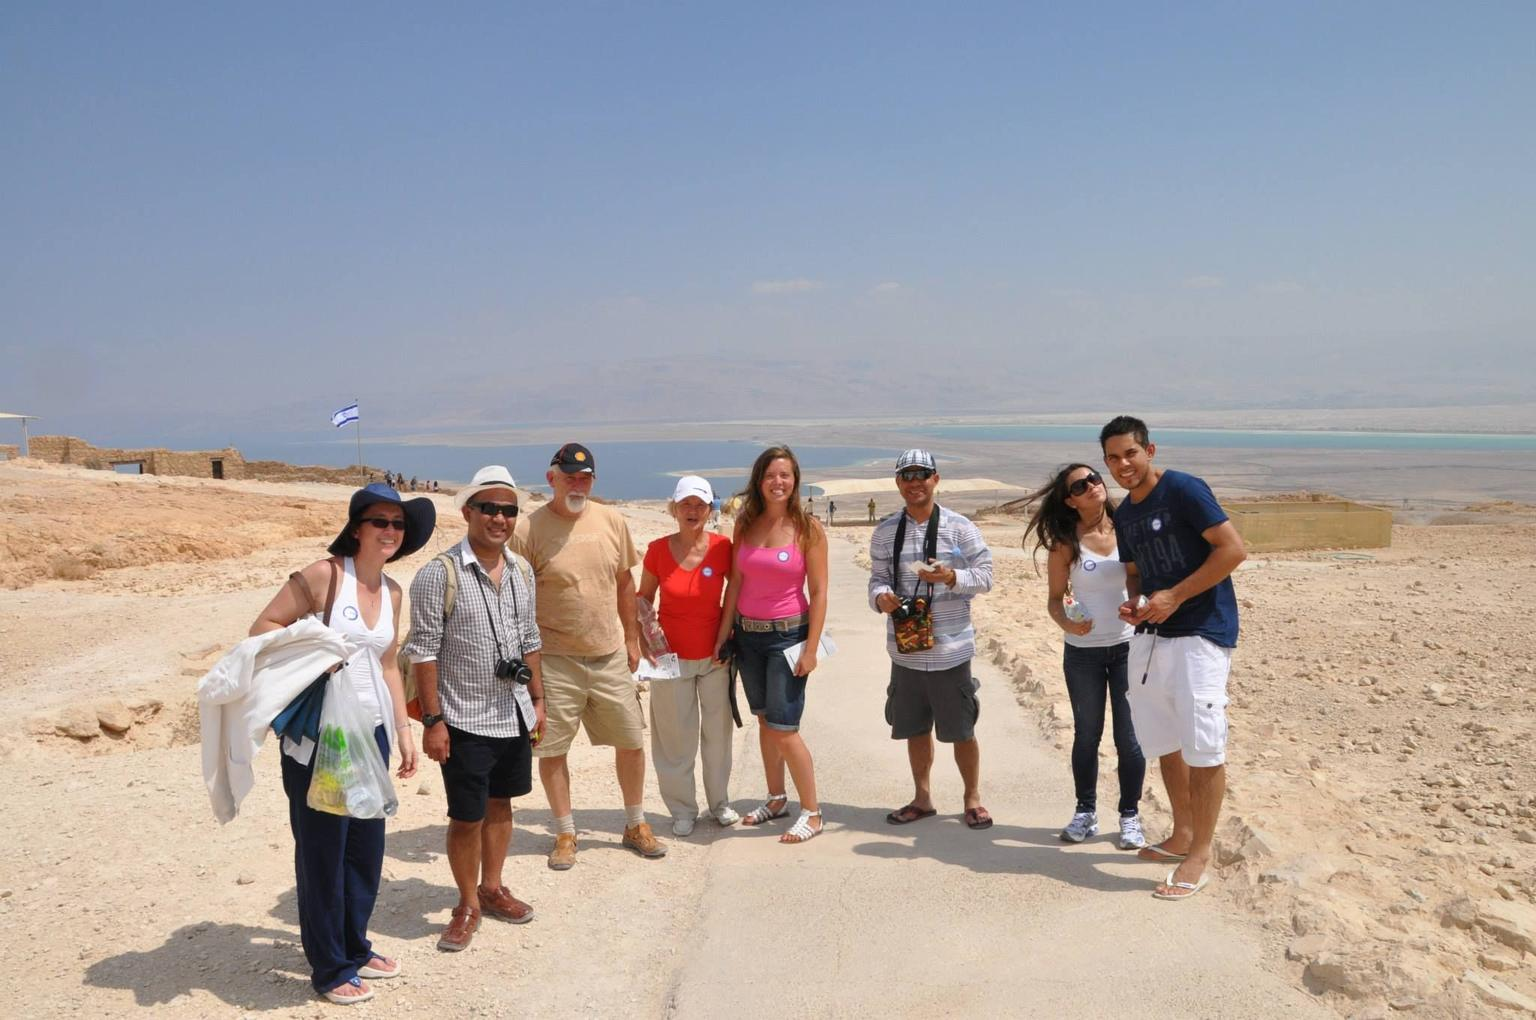 MAIS FOTOS, Masada and the Dead Sea Day Trip from Jerusalem